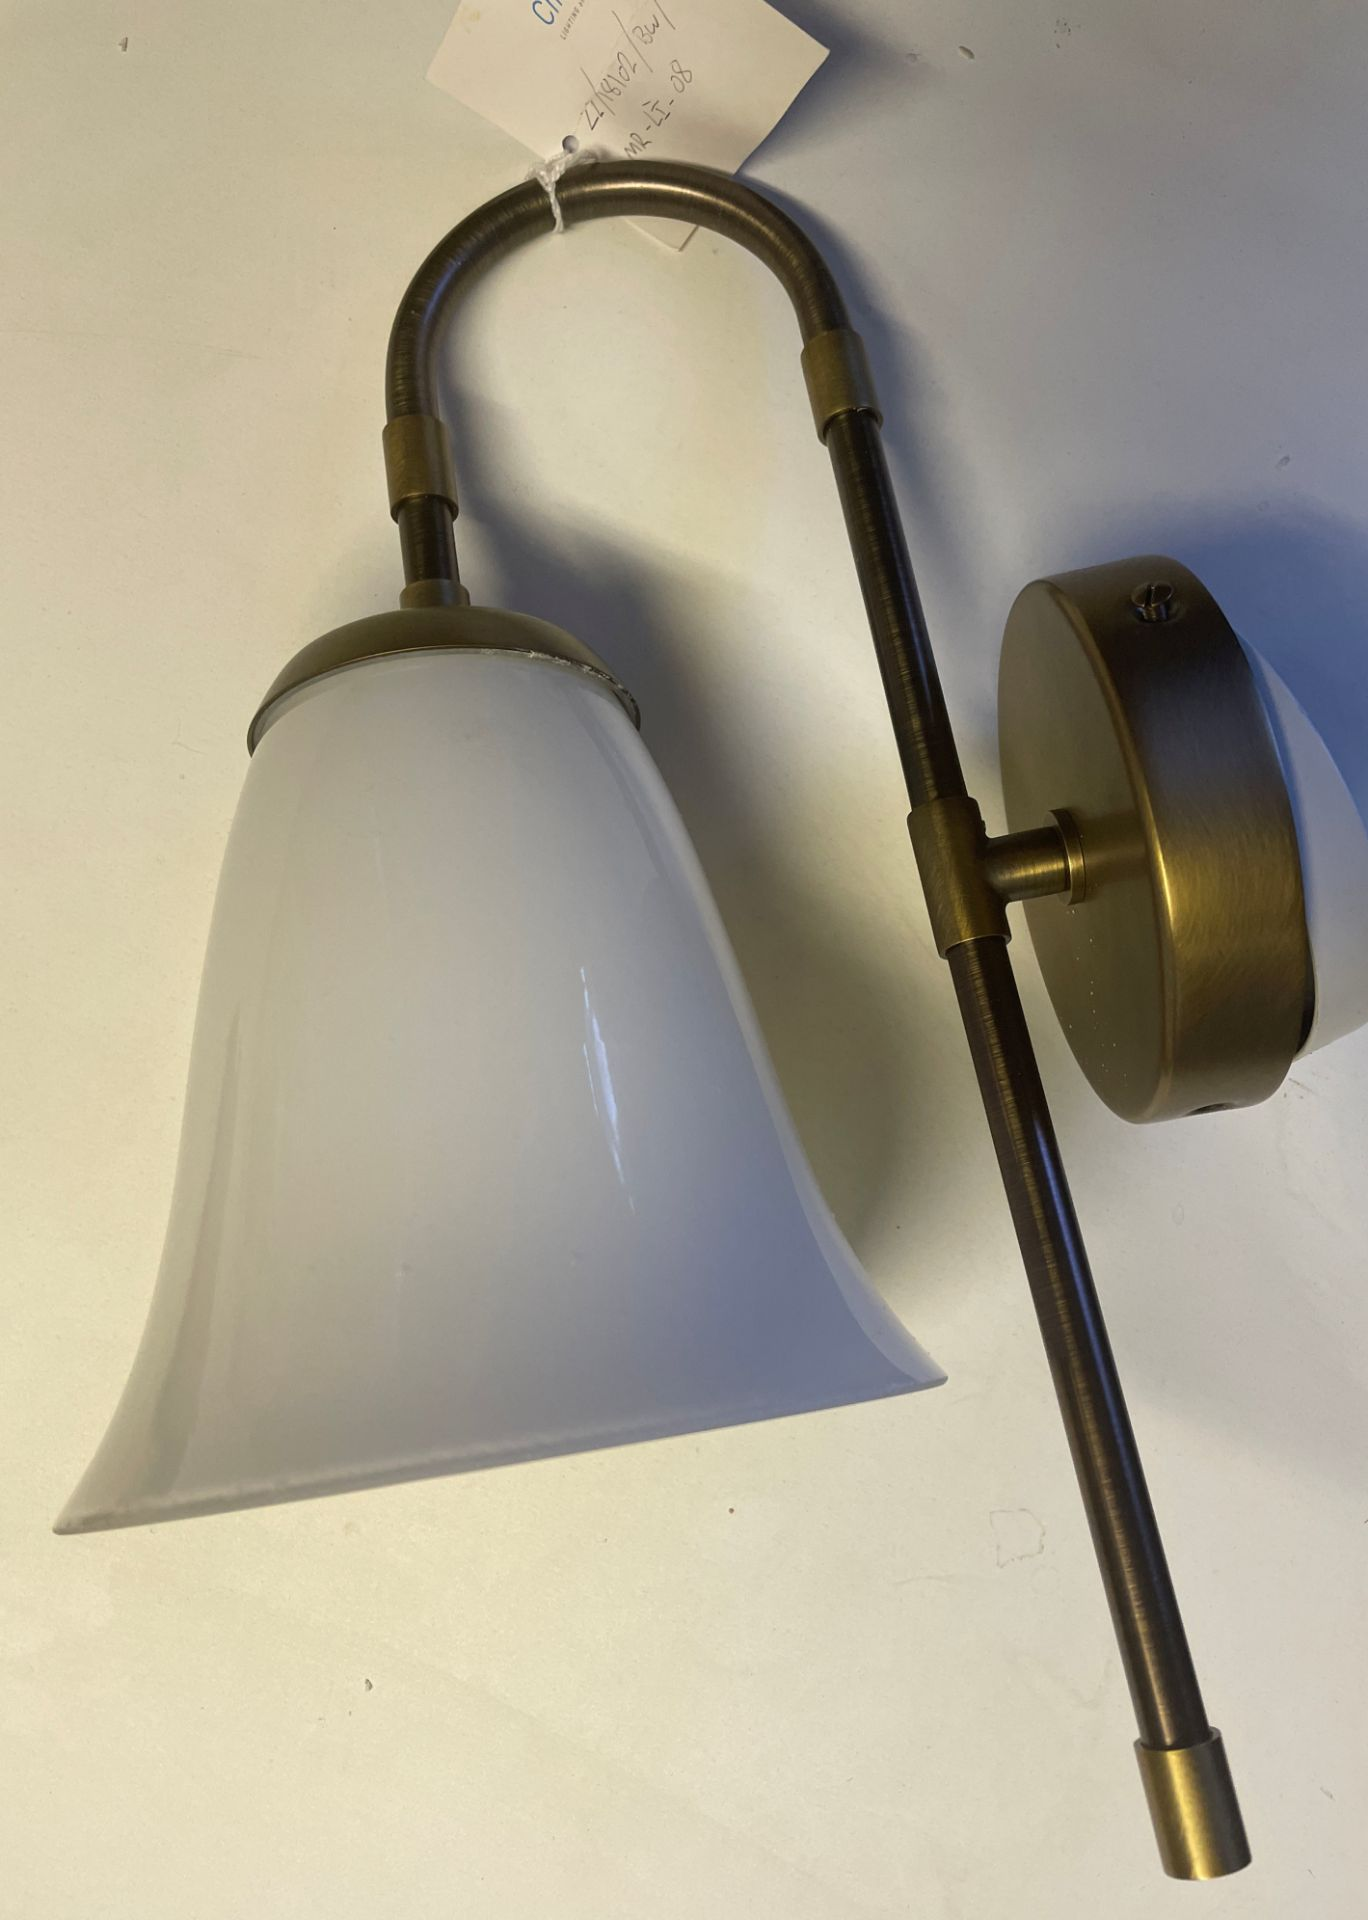 1 x Chelsom brushed brass and bronze Wall Light (height 37cm x depth 24cm) with smoked white glass - Image 5 of 9